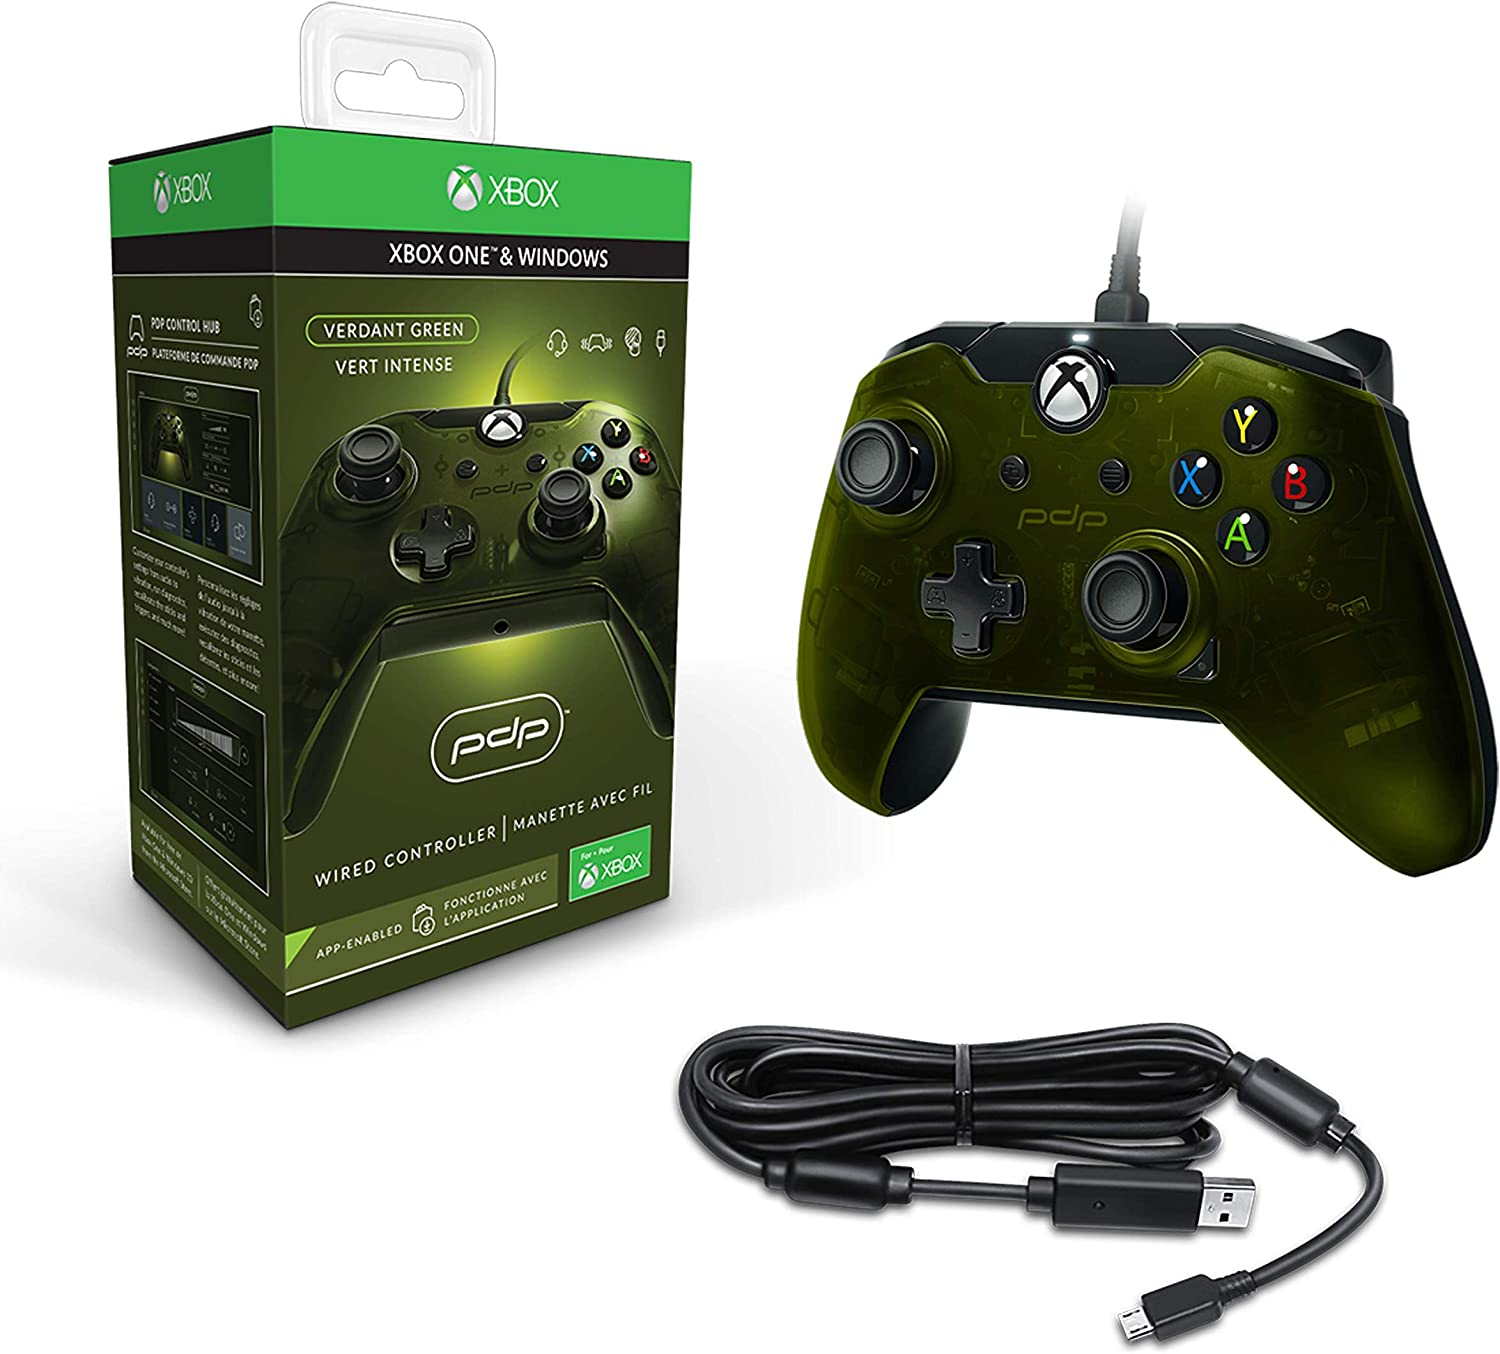 Pdp - Mando Licenciado Nueva, Color Verde (Xbox One): Amazon.es ...